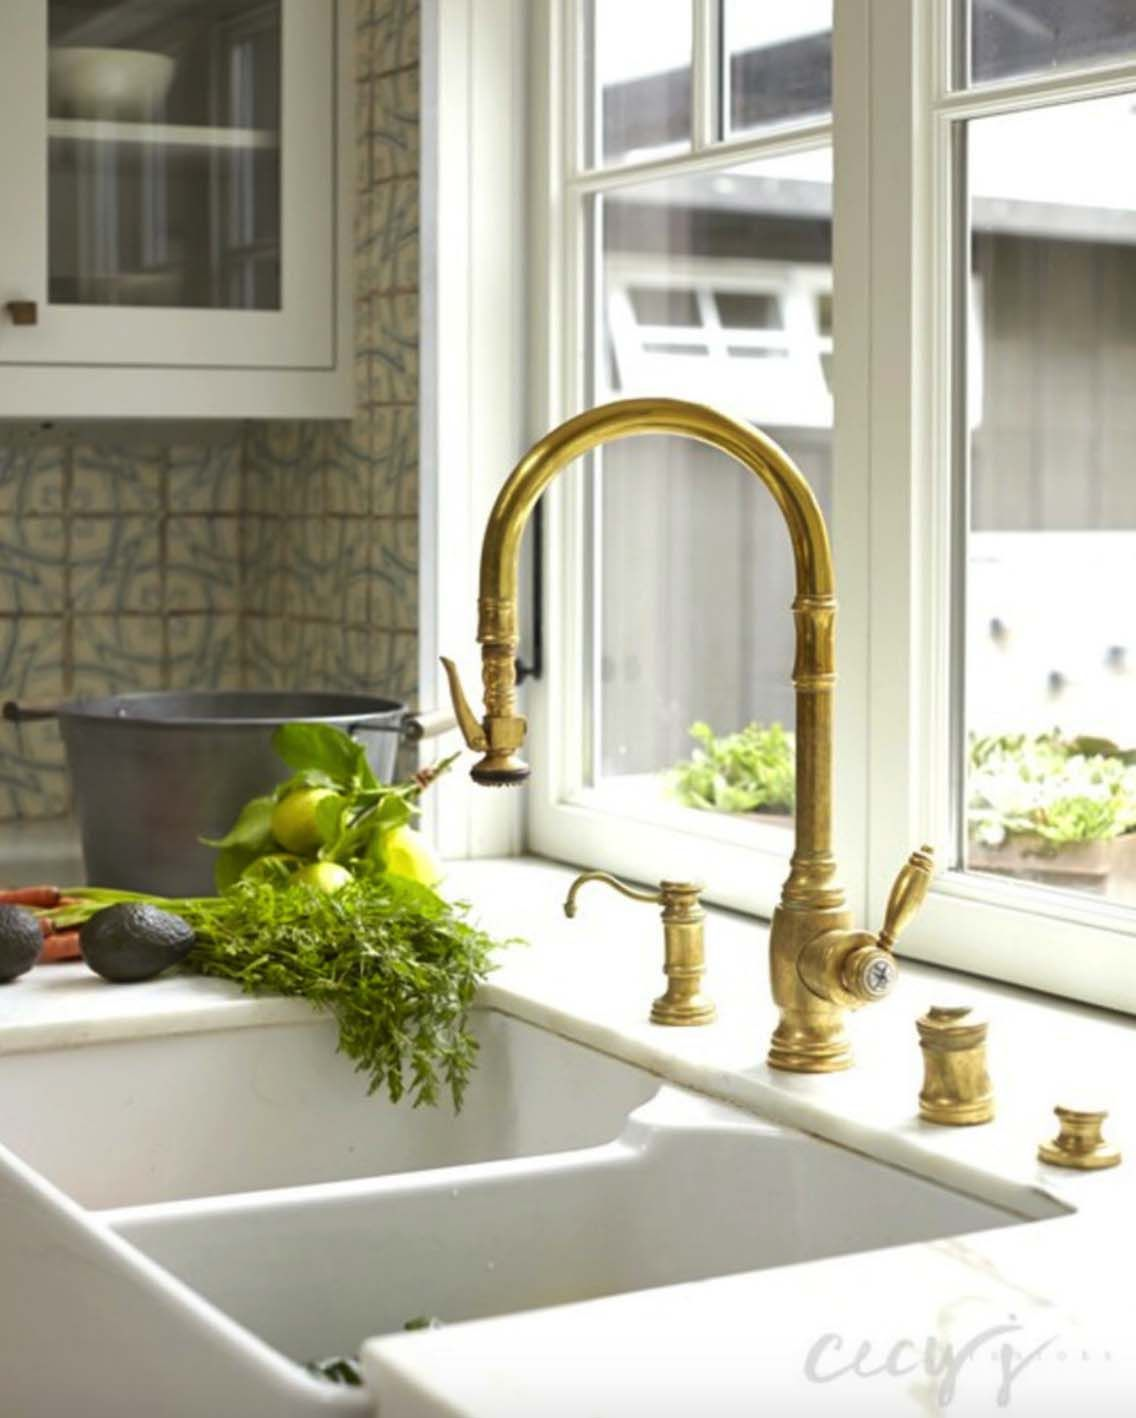 Casual Elegance Defines This Bungalow Style Home In California Gooseneck Kitchen Faucet Gold Kitchen Faucet Brass Kitchen Faucet